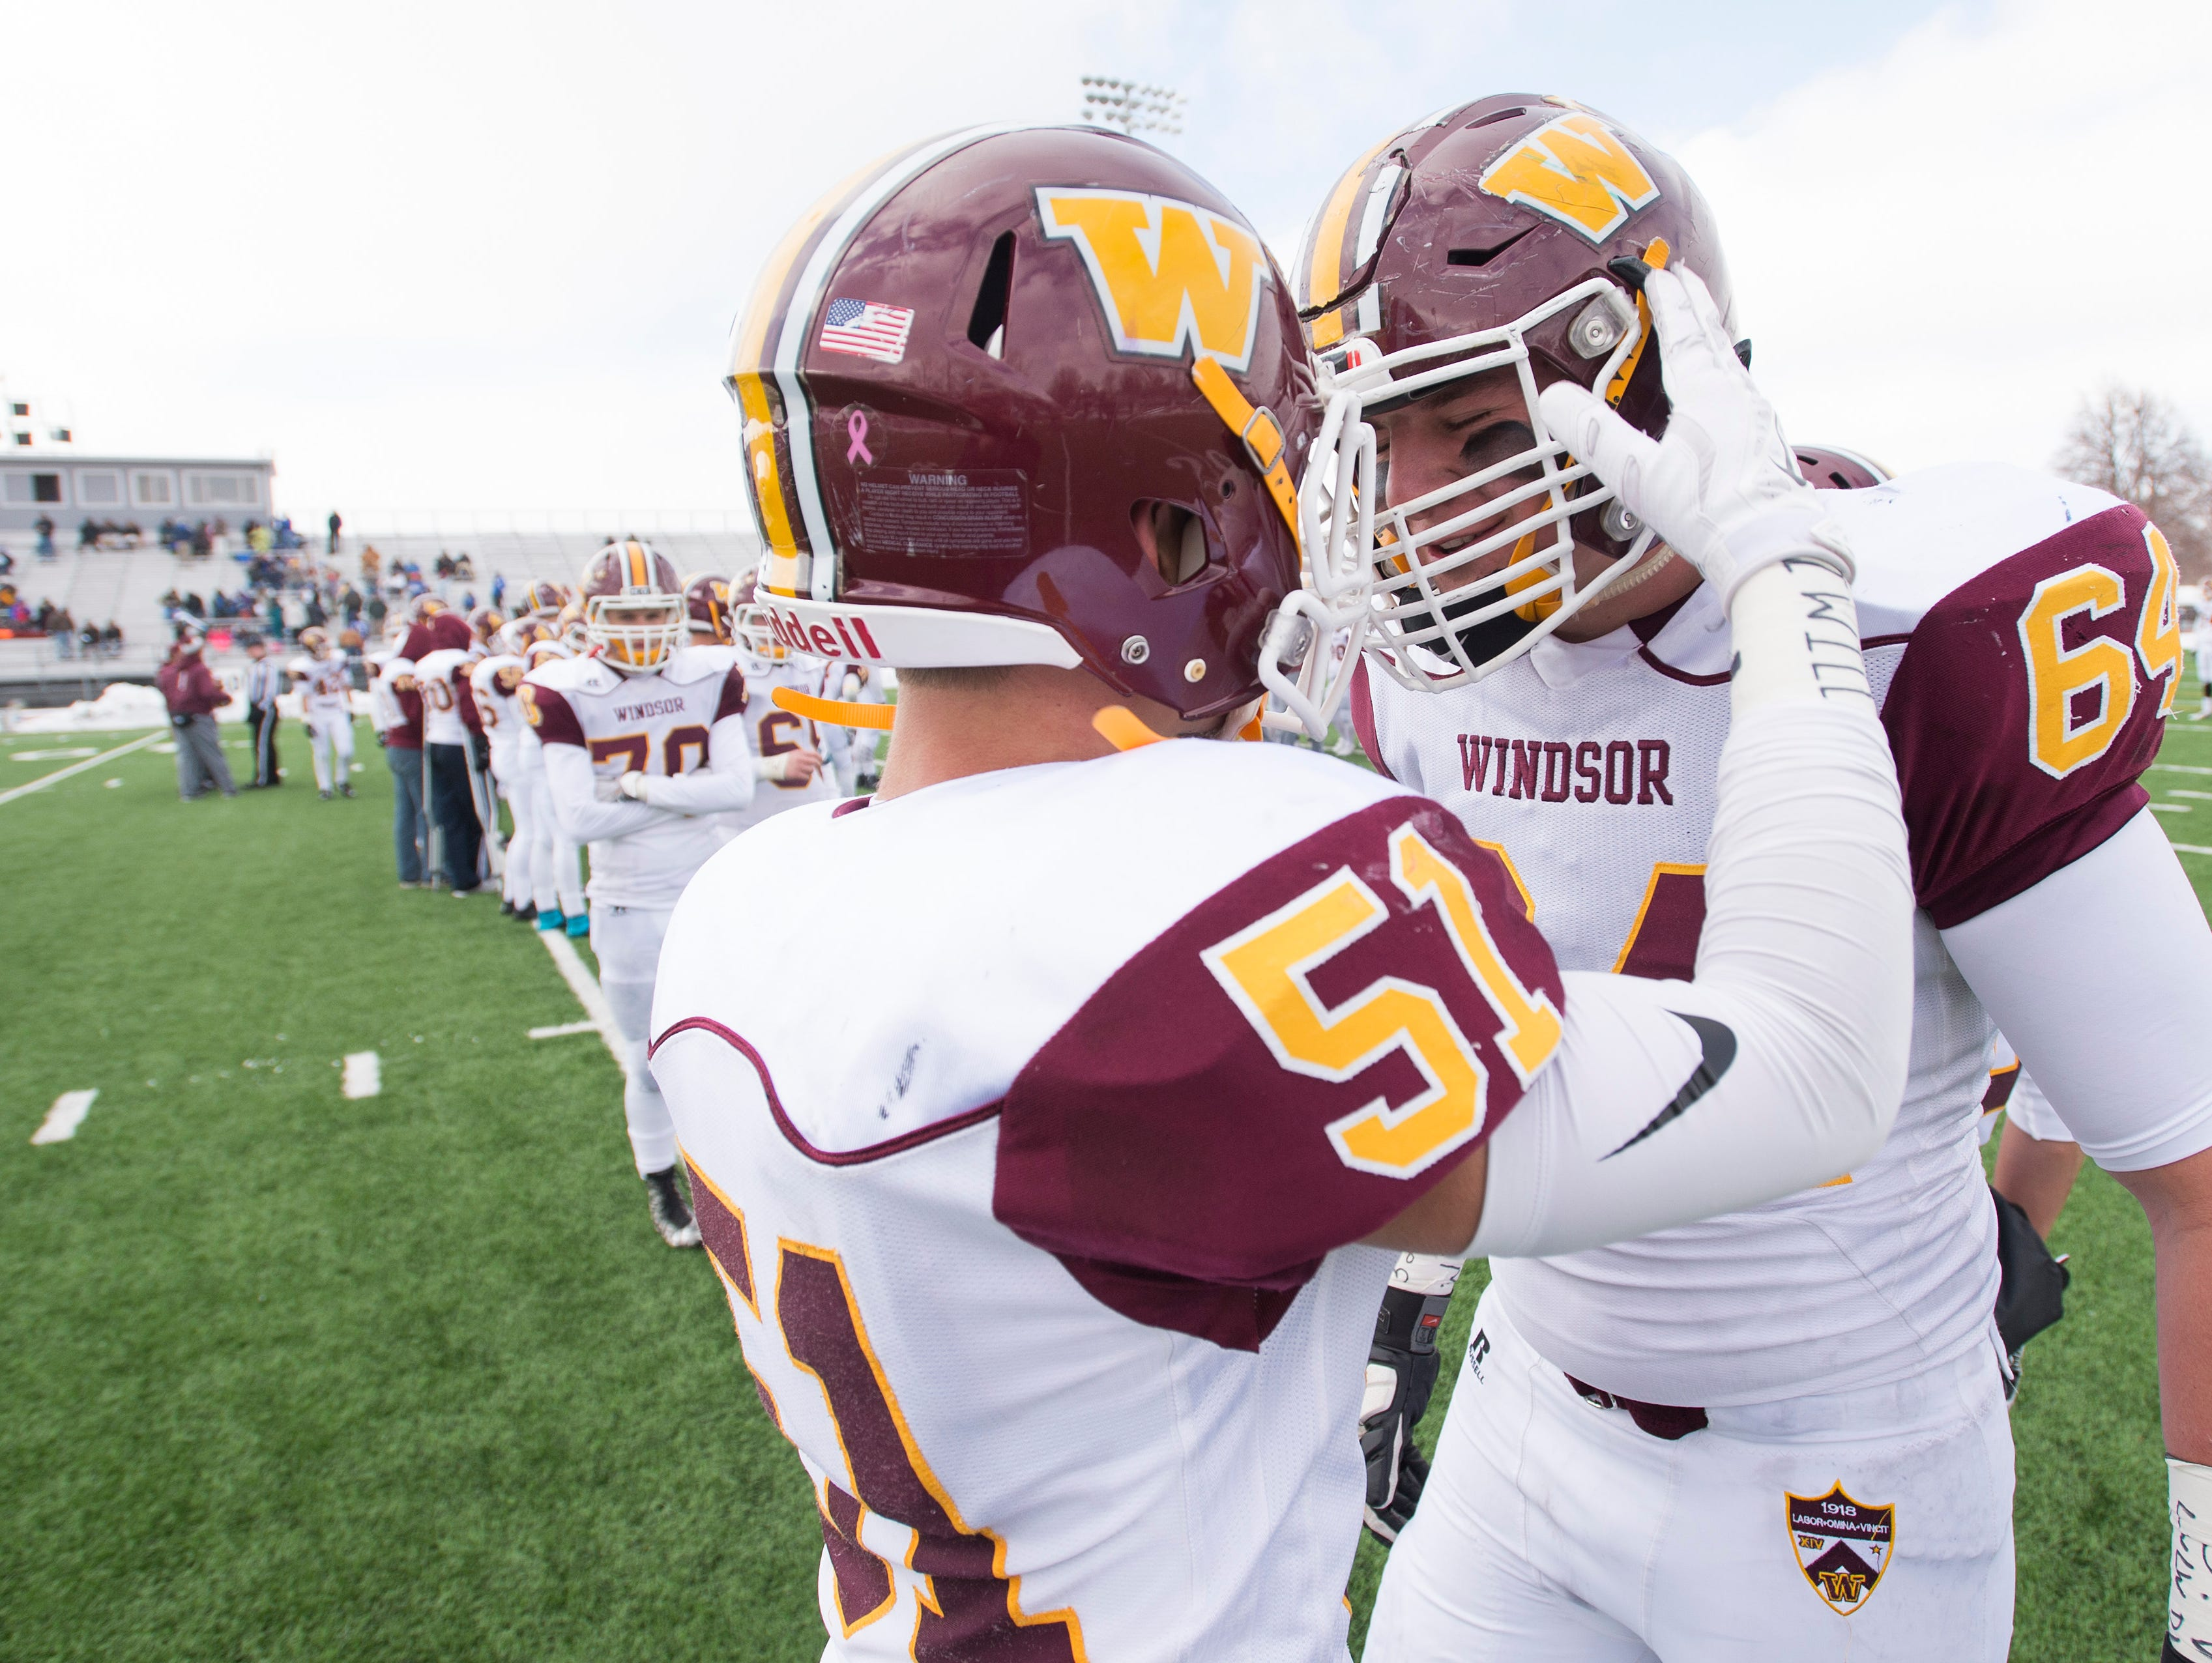 Windsor High School football players Josh Bloss and Zach Watts warm up before the team takes on Longmont in the 4A State Semifinal at Everly-Montgomery Field in Longmont Saturday, November 28, 2015.